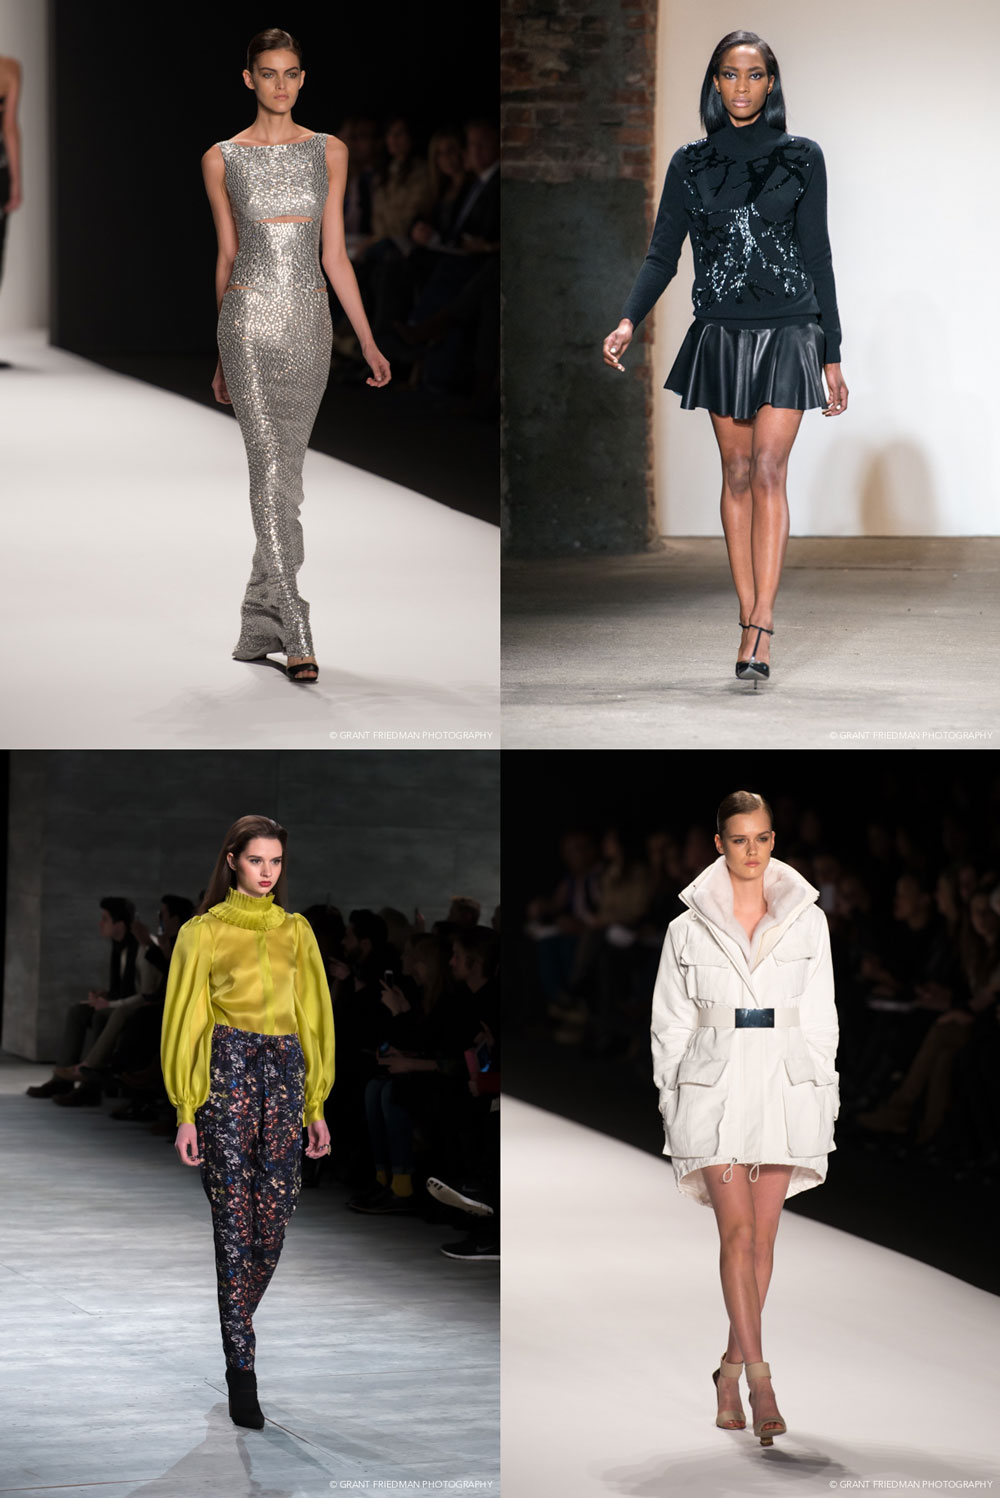 0060_Runway_Recap_Featured-2